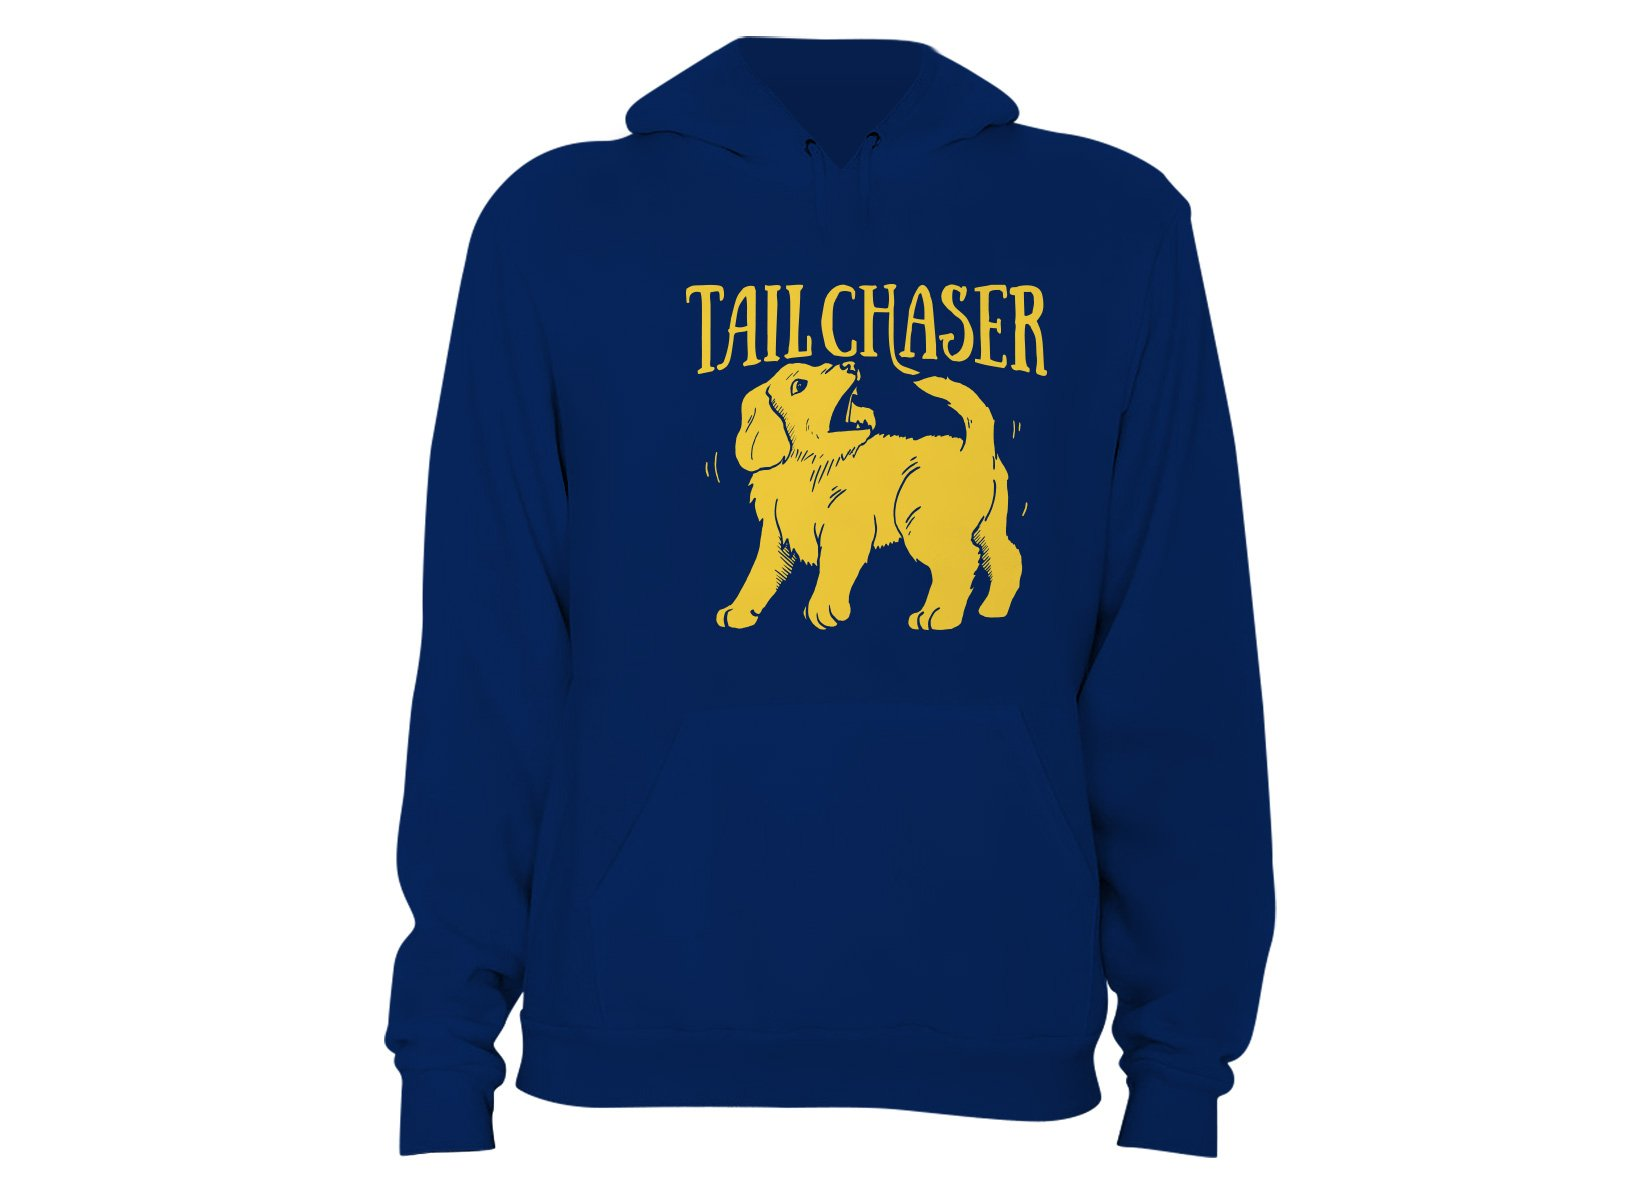 Tail Chaser on Hoodie